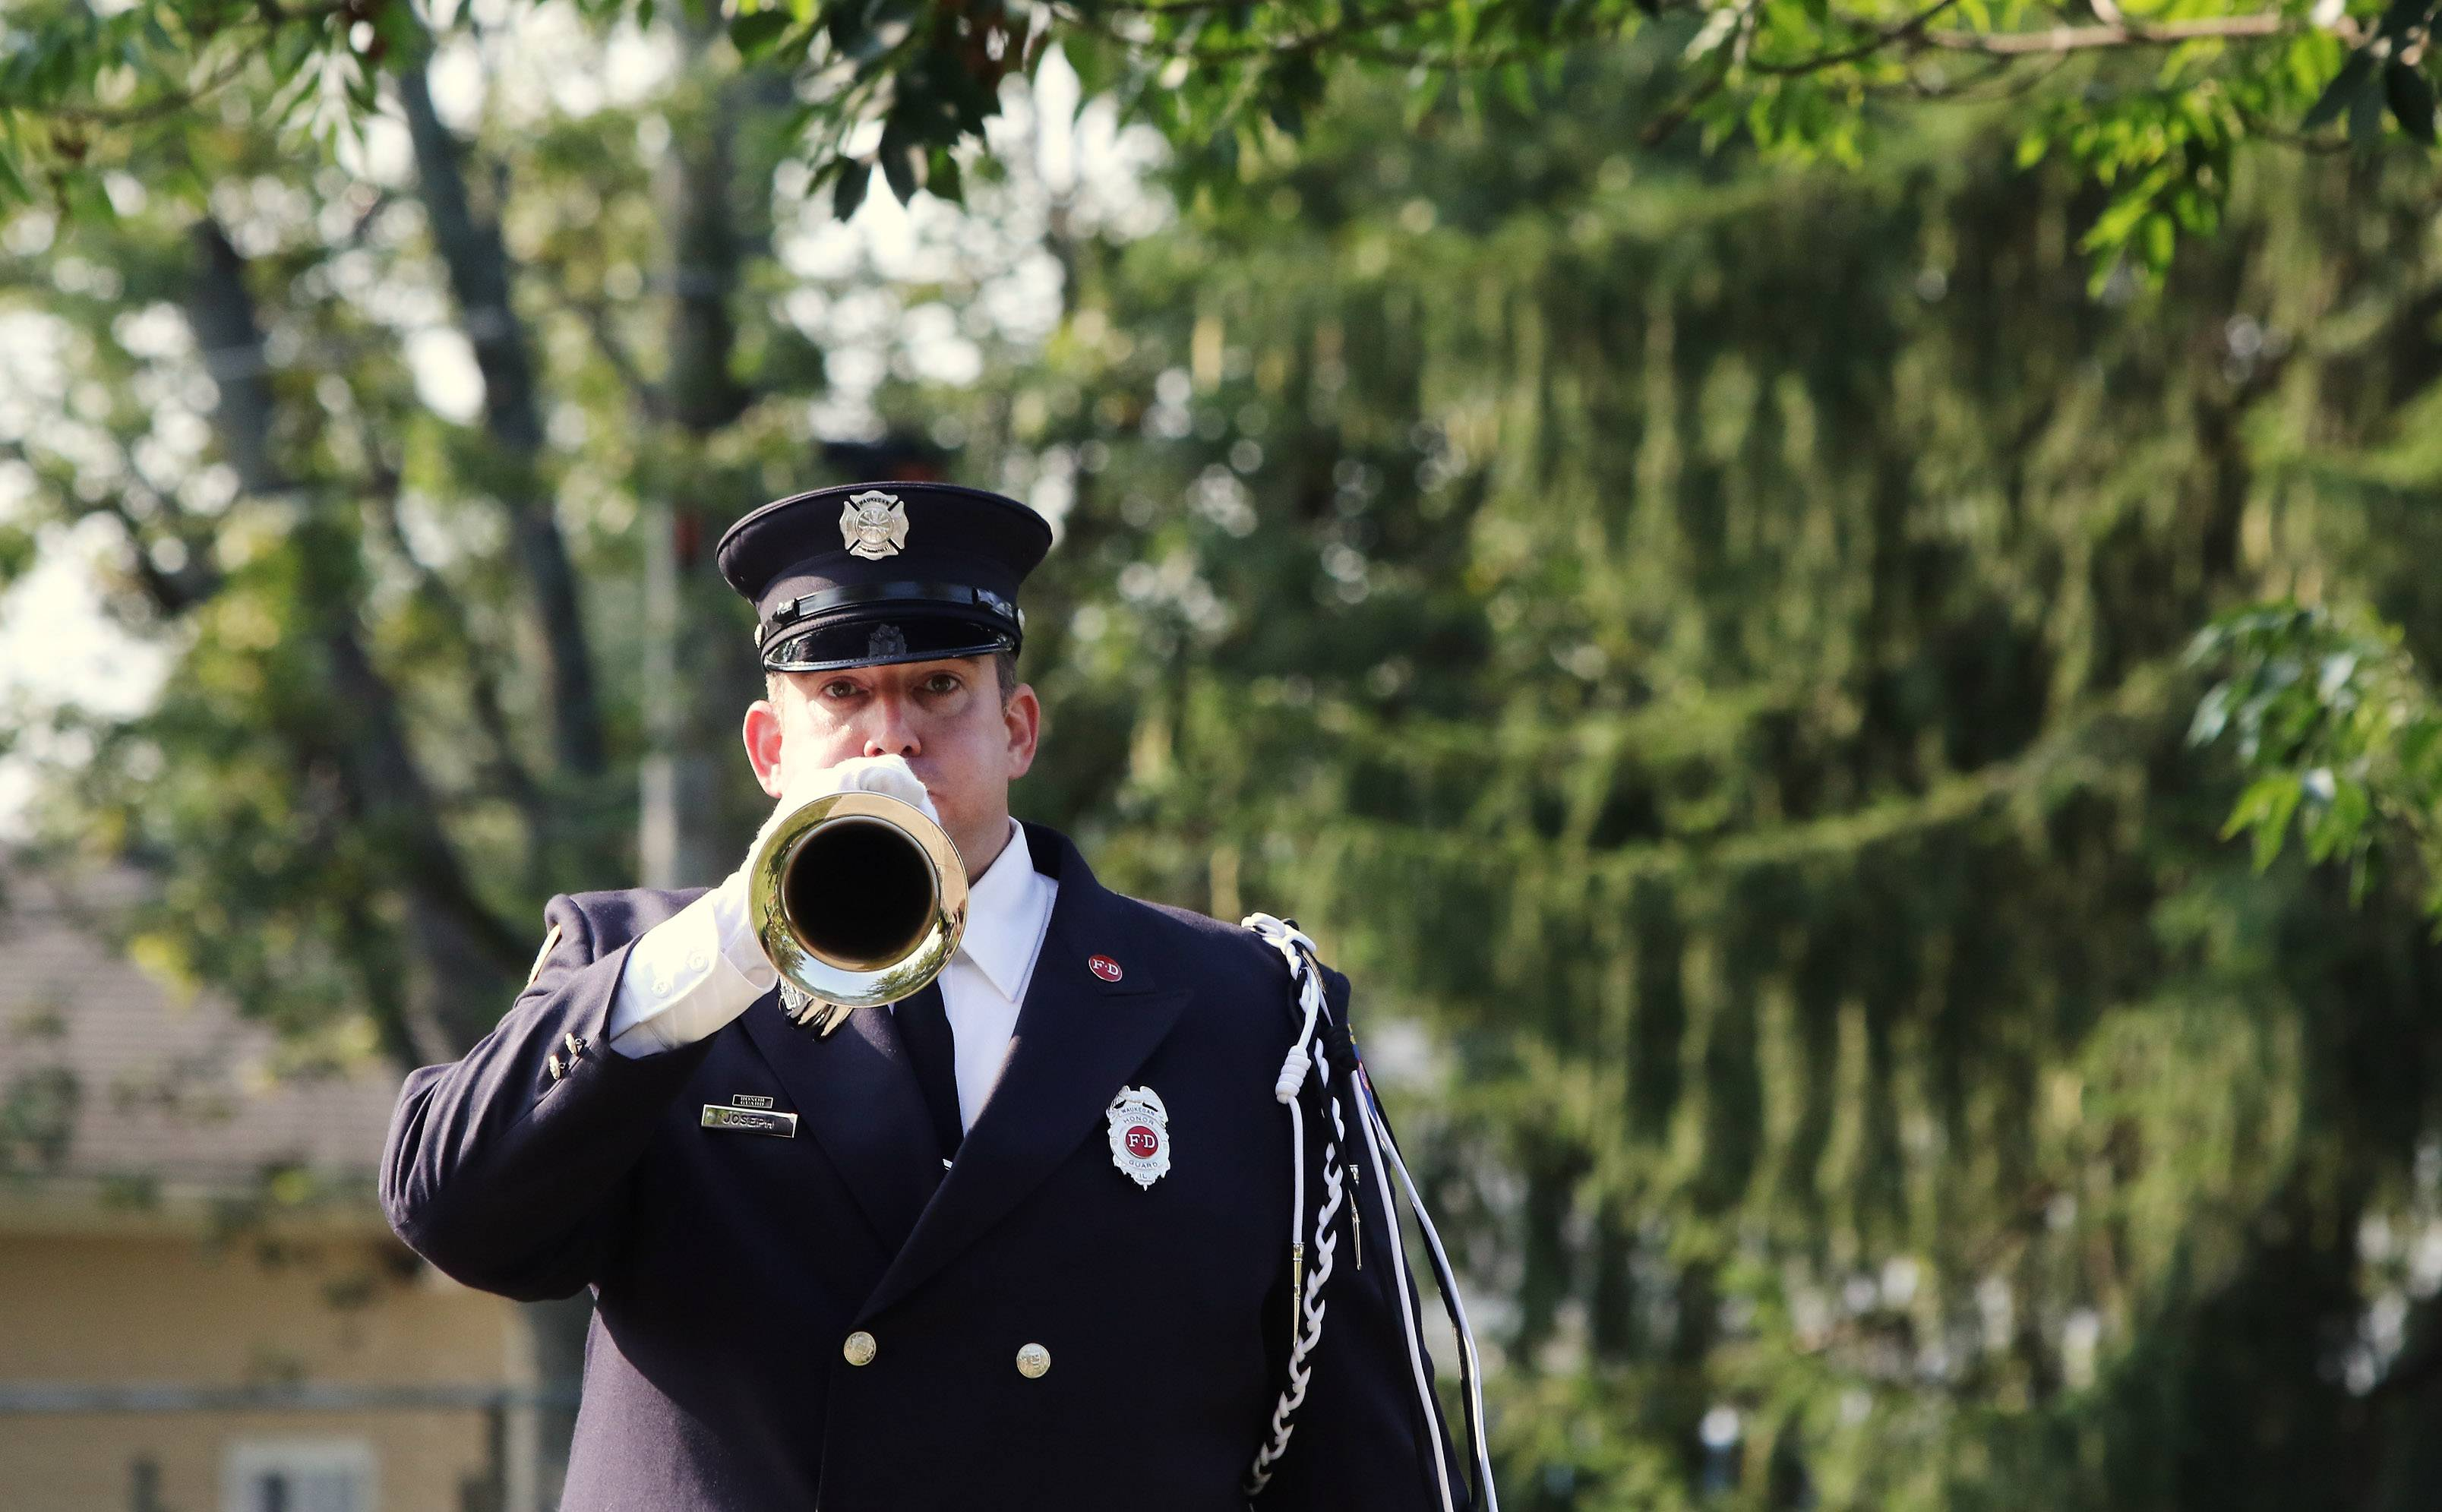 Lake County remembers those lost on 9/11